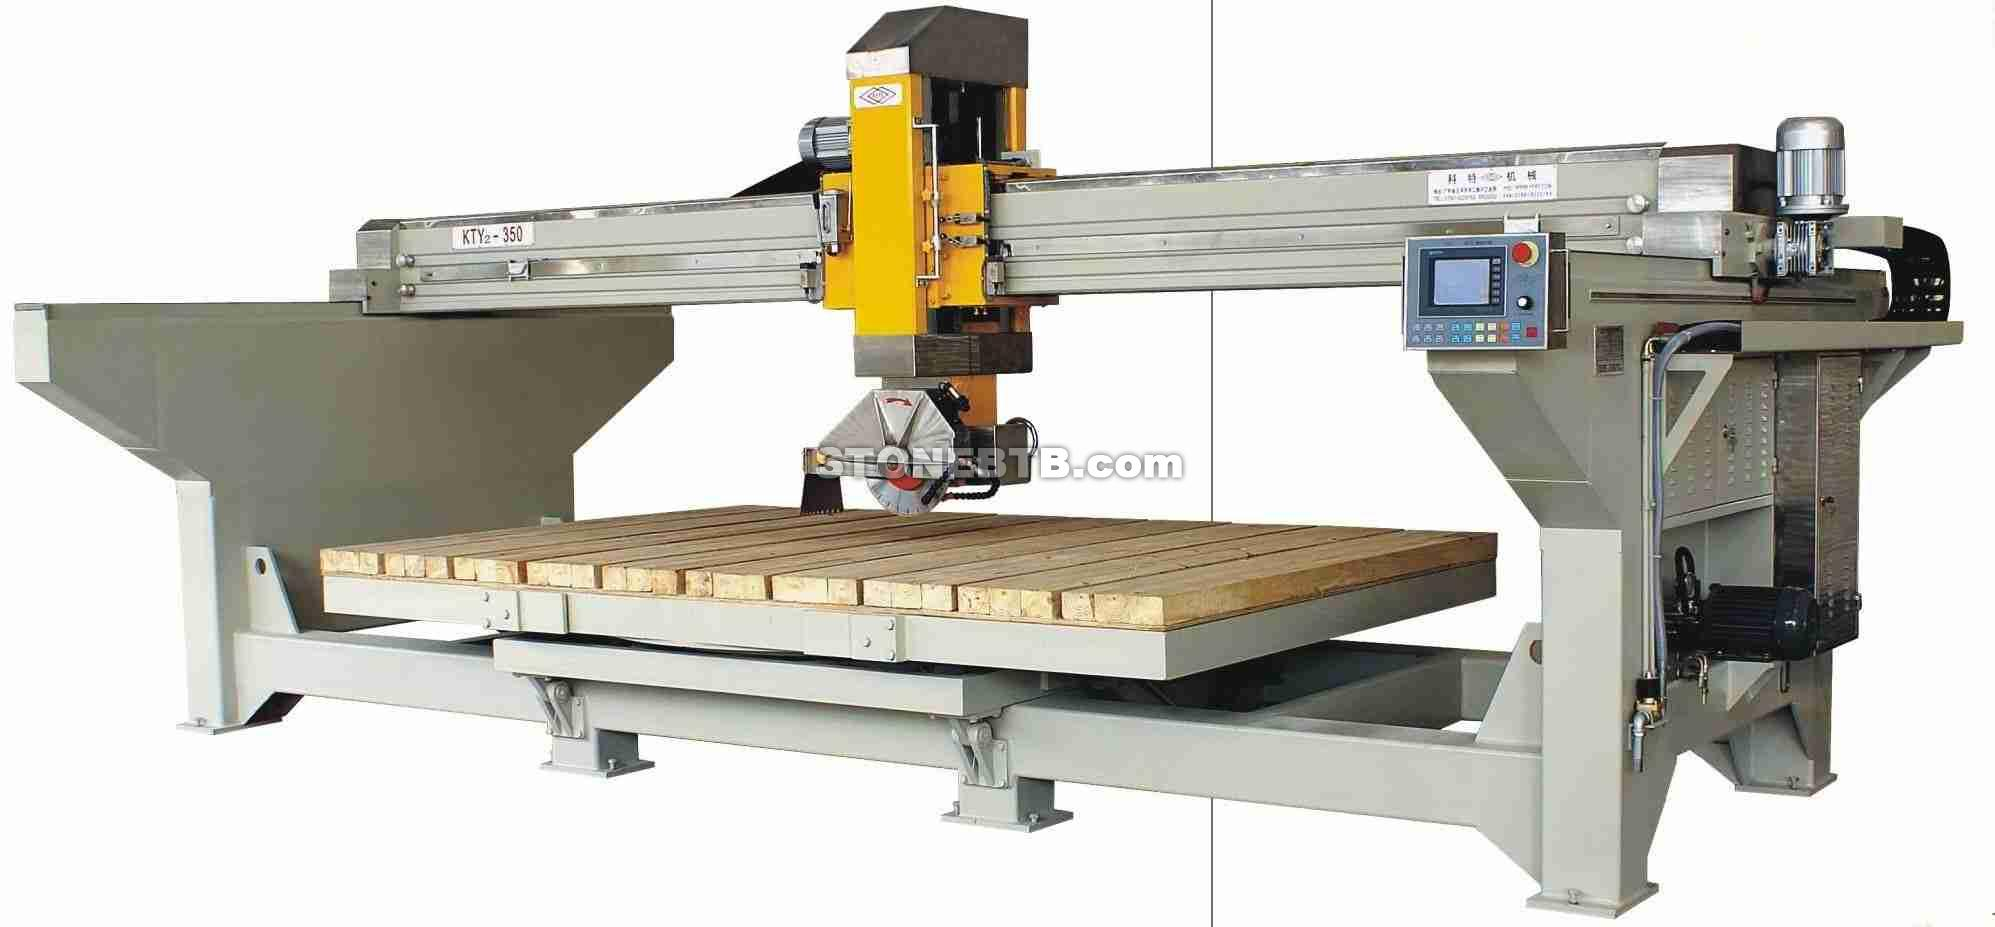 KTY2 350 WHOLE BRADGE AUTOMATIC SAWING MACHINE